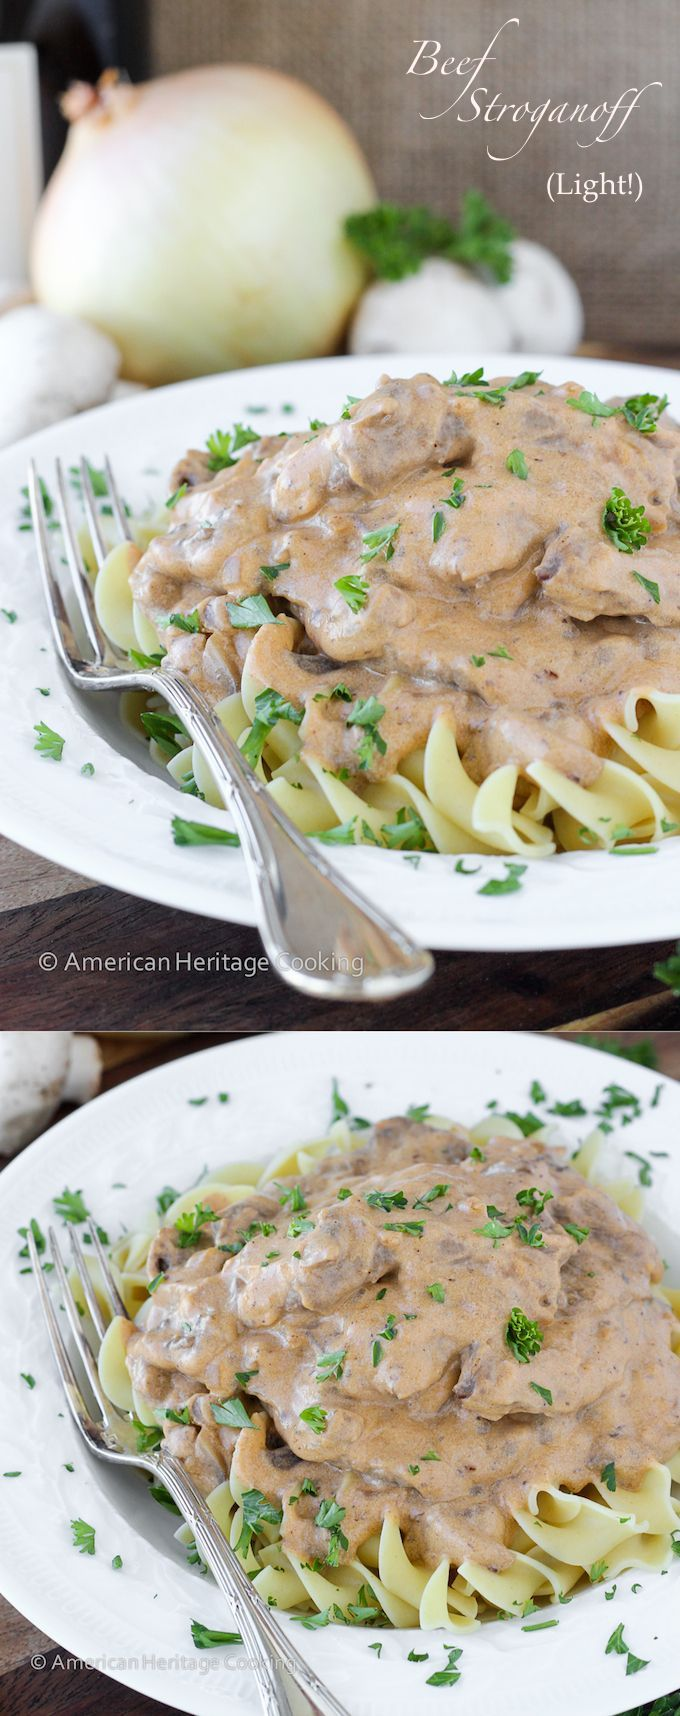 This Healthy Beef Stroganoff has all of the familiar flavor with none of the guilt! #americanheritagecooking #beefstroganoffrecipe #healthyrecipes